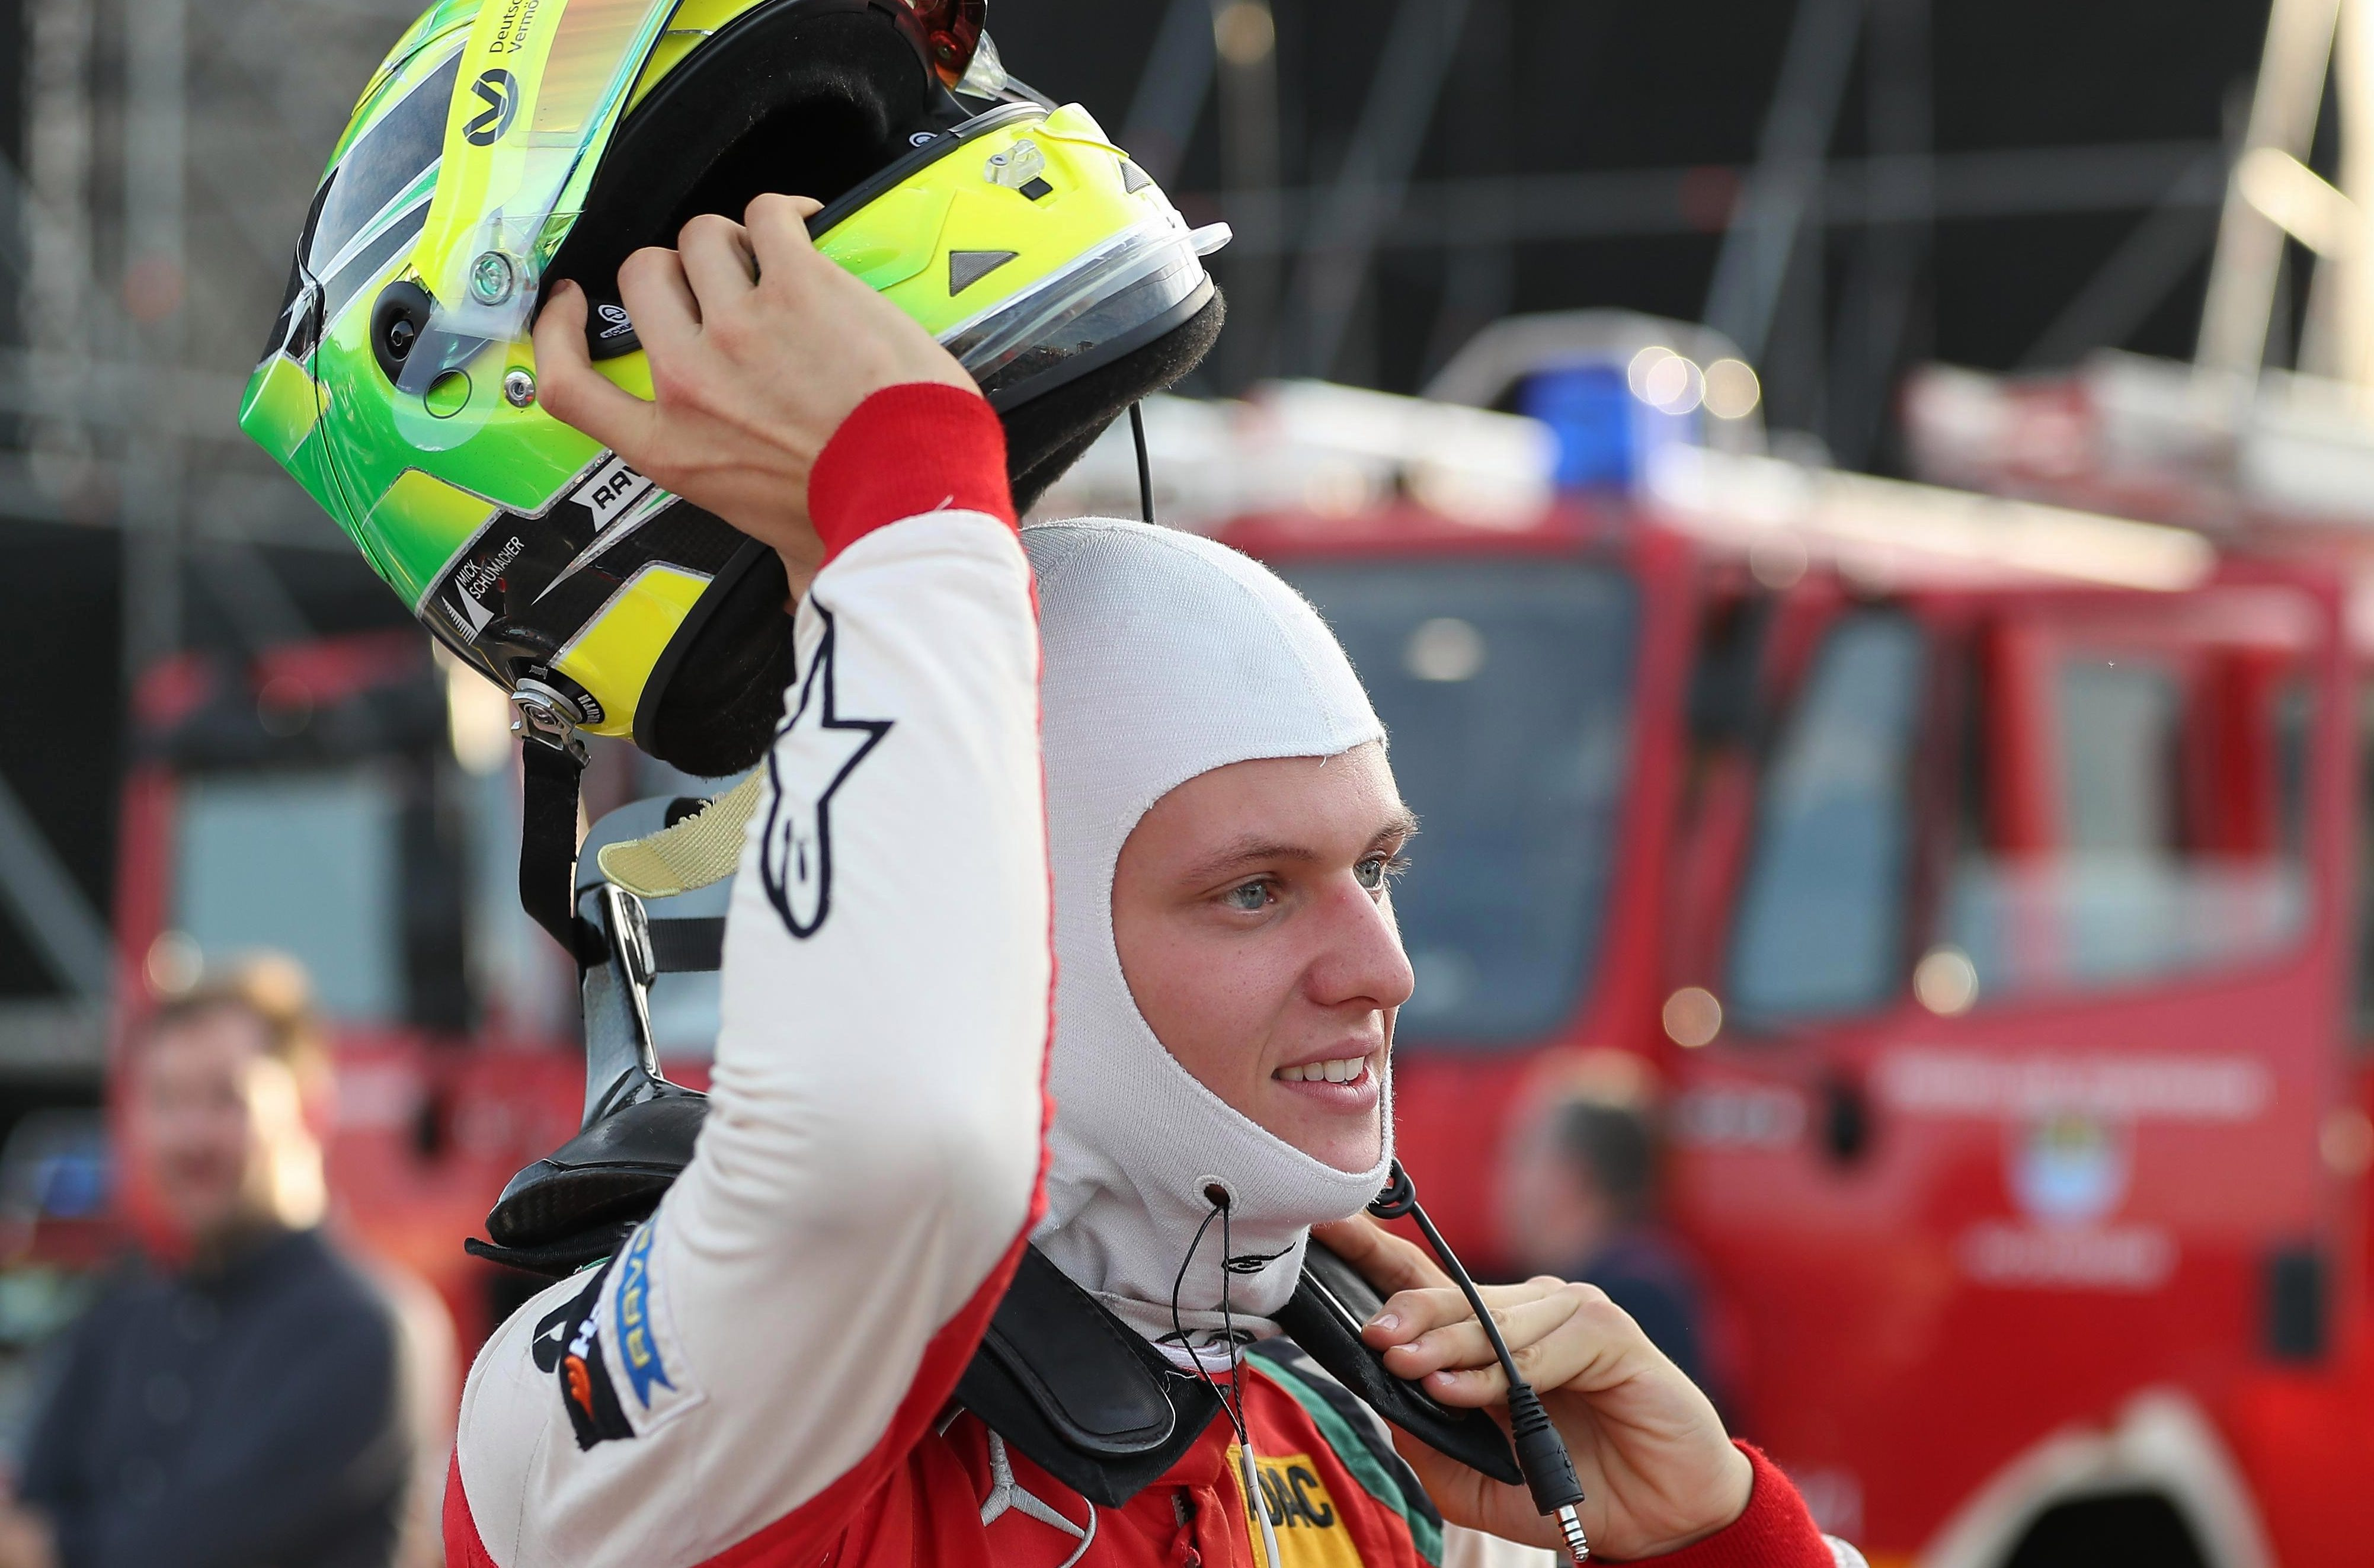 Mick Schumacher enjoys his moment of triumph as he clinches the F3 crown in Hockenheim